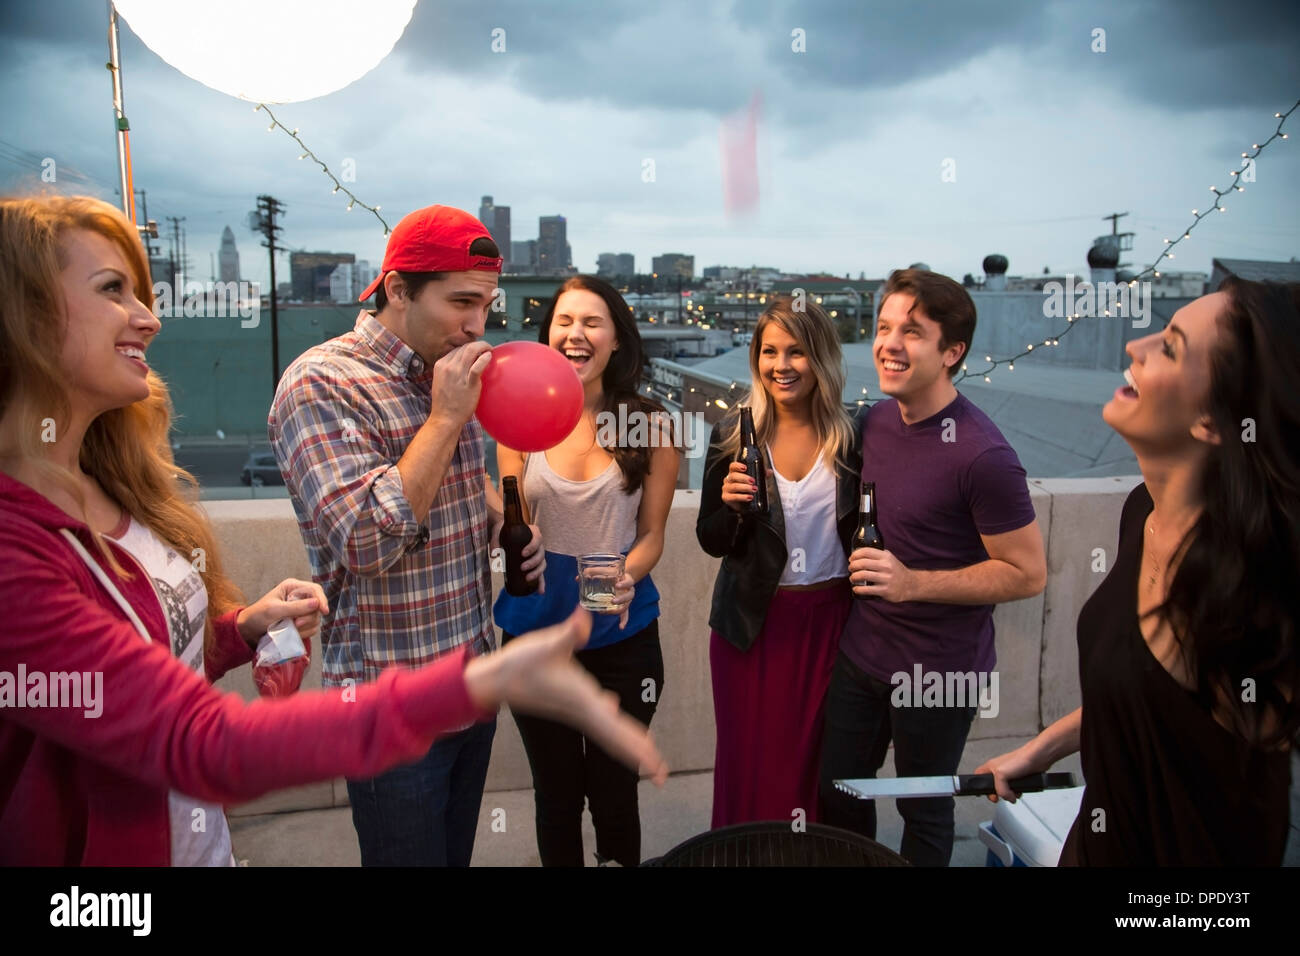 Young adult friends fooling around at barbeque - Stock Image